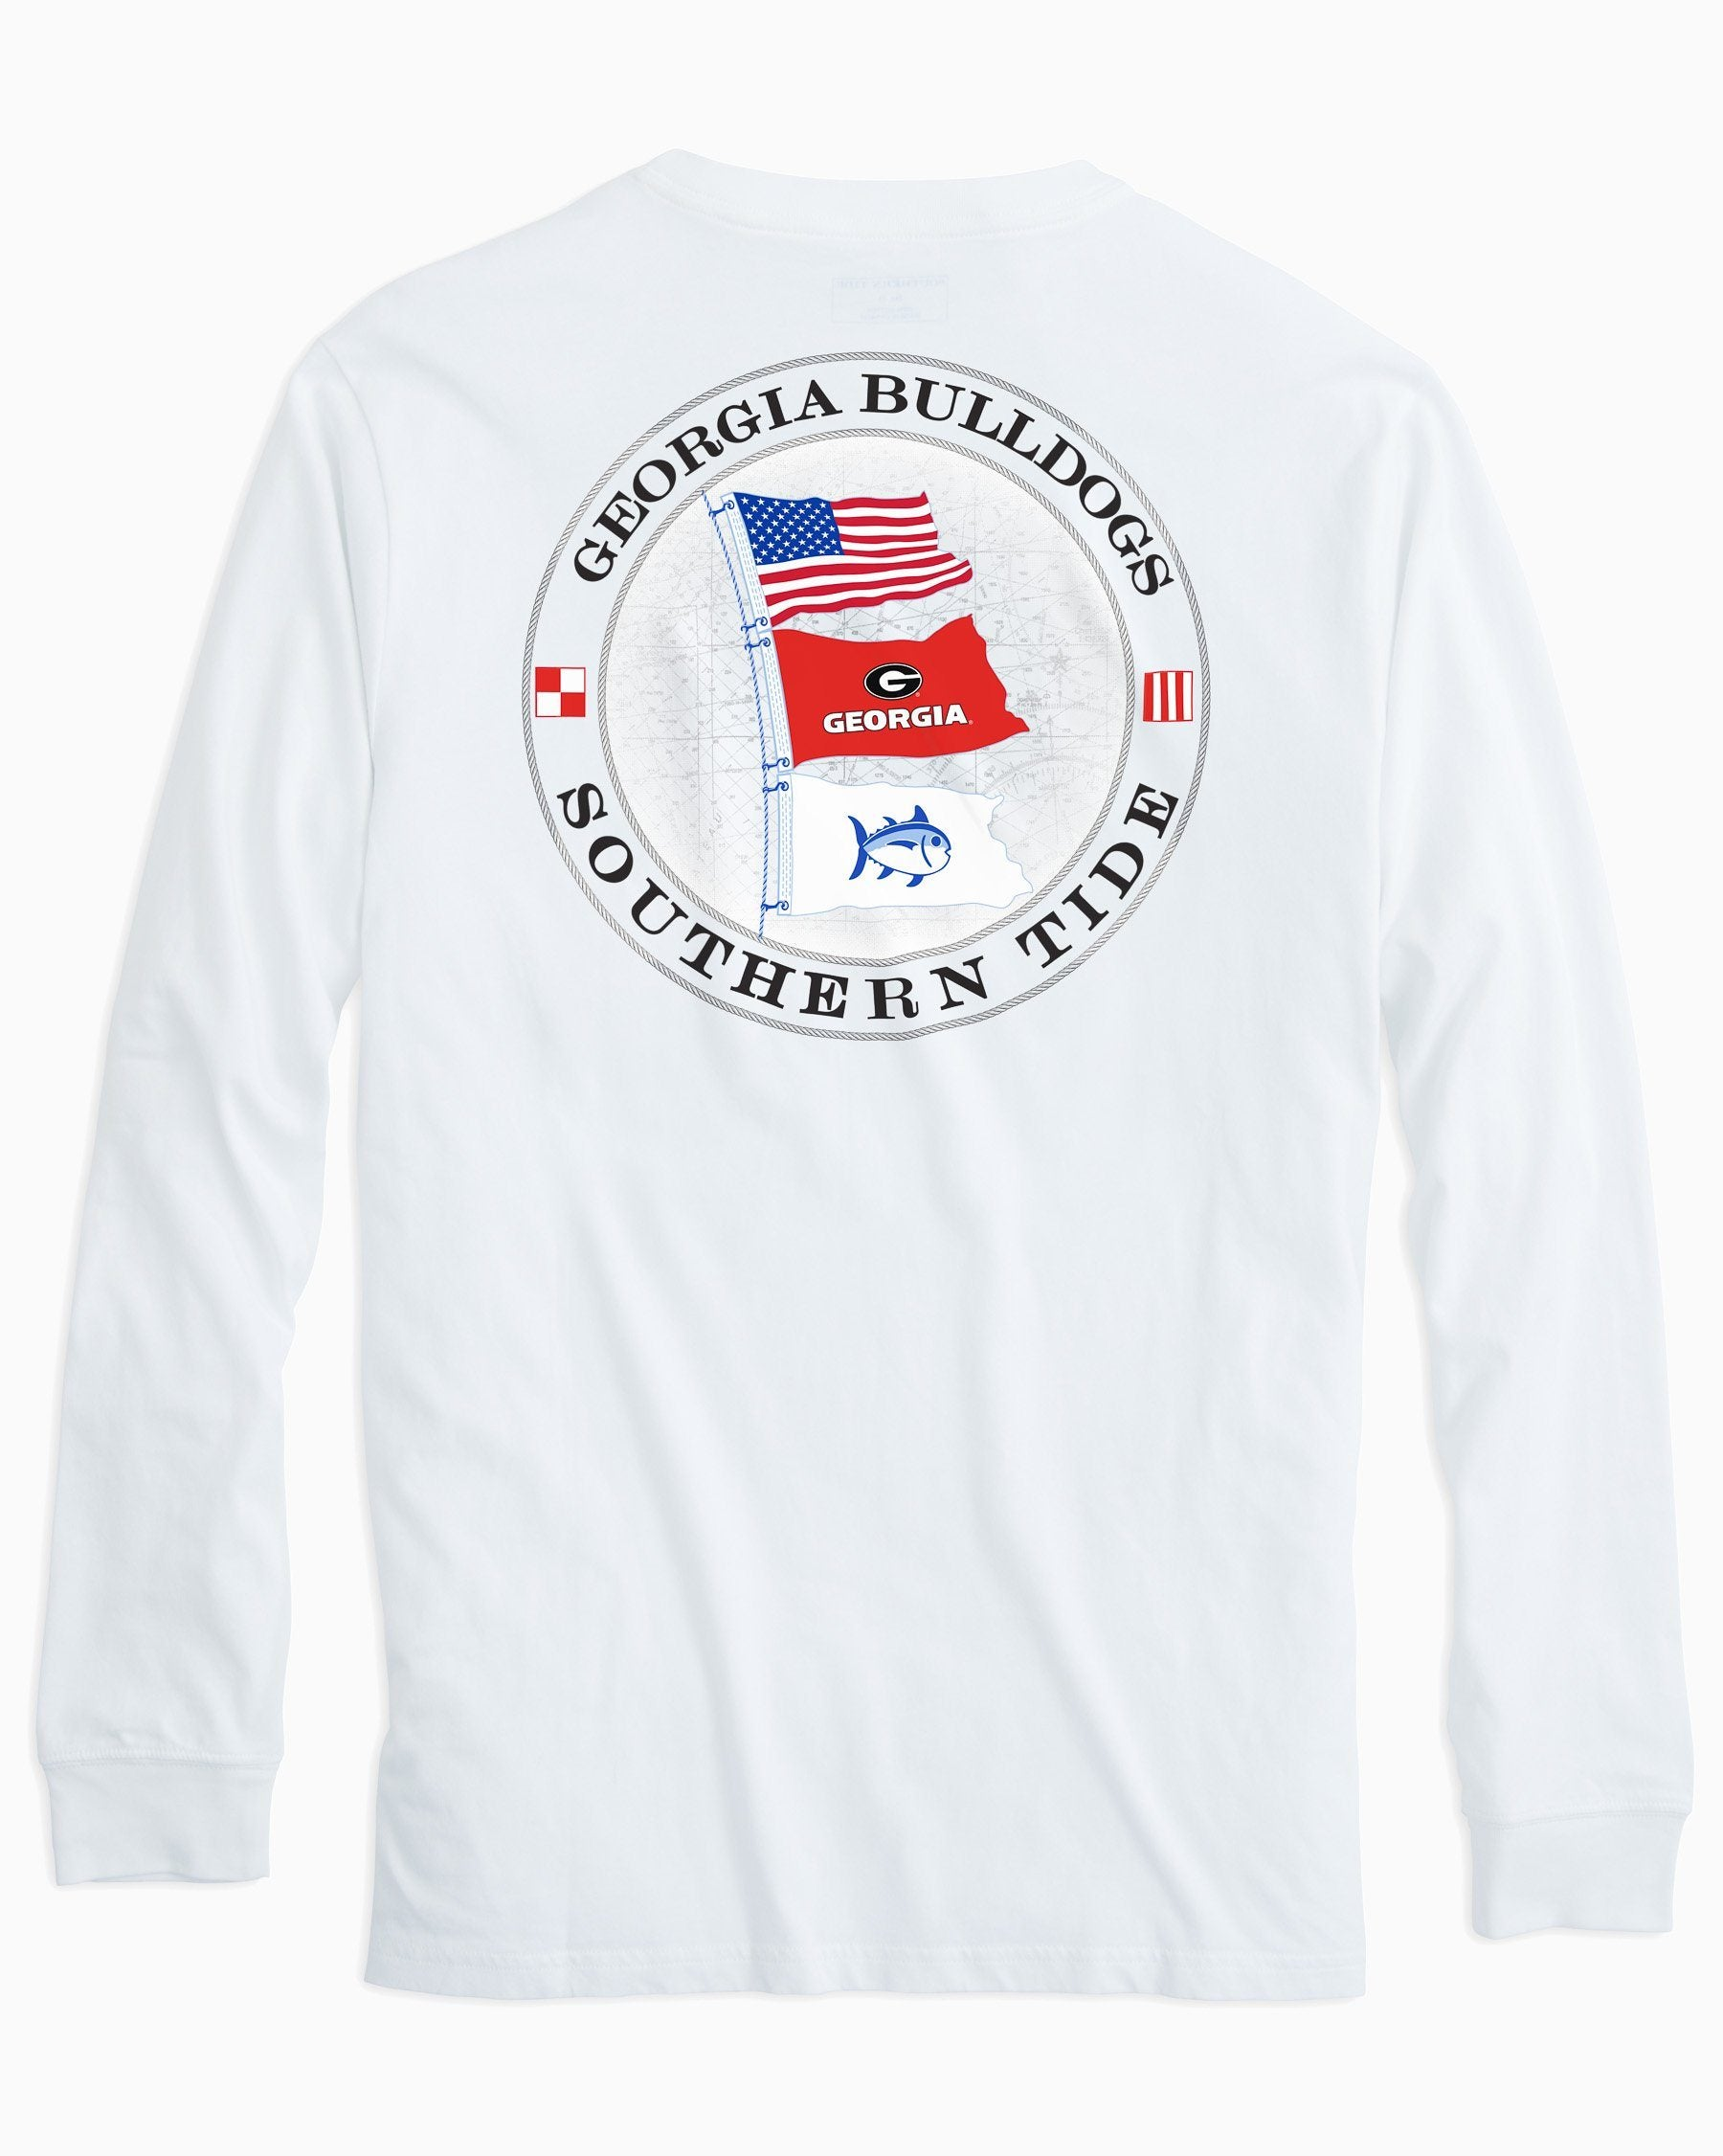 941ba453ae59 Georgia Bulldogs Flags Long Sleeve T-Shirt | Southern Tide